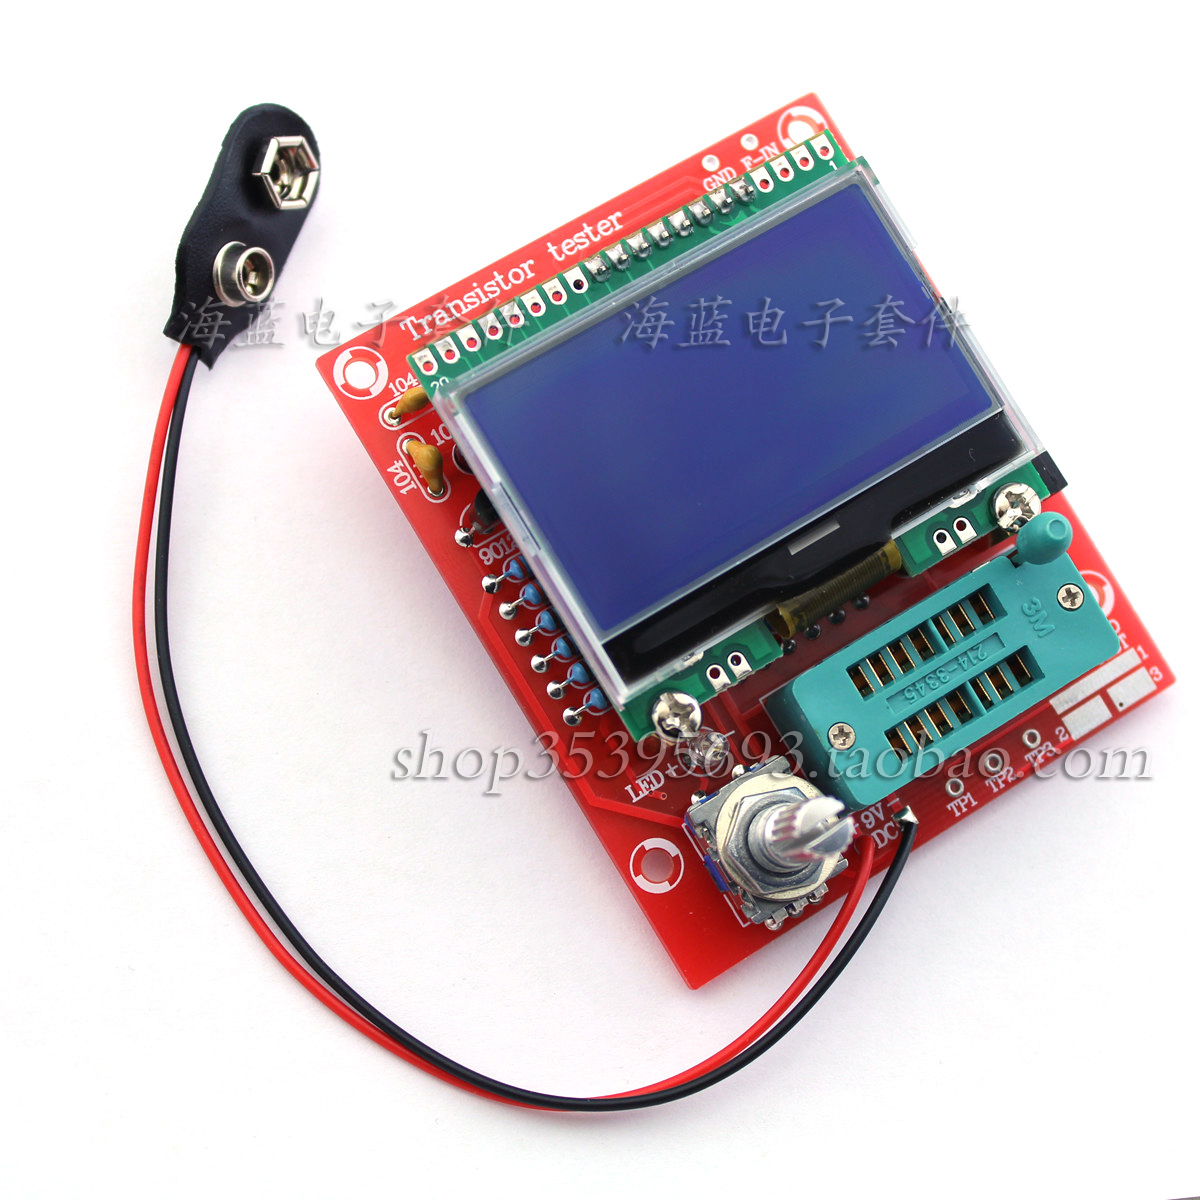 Graphics Version Of The Transistor Tester Lcr Two Or Three Tube Line Good Bad Pwm Esr Fang Bo Signal Diy Suite In Air Conditioner Parts From Home Appliances On